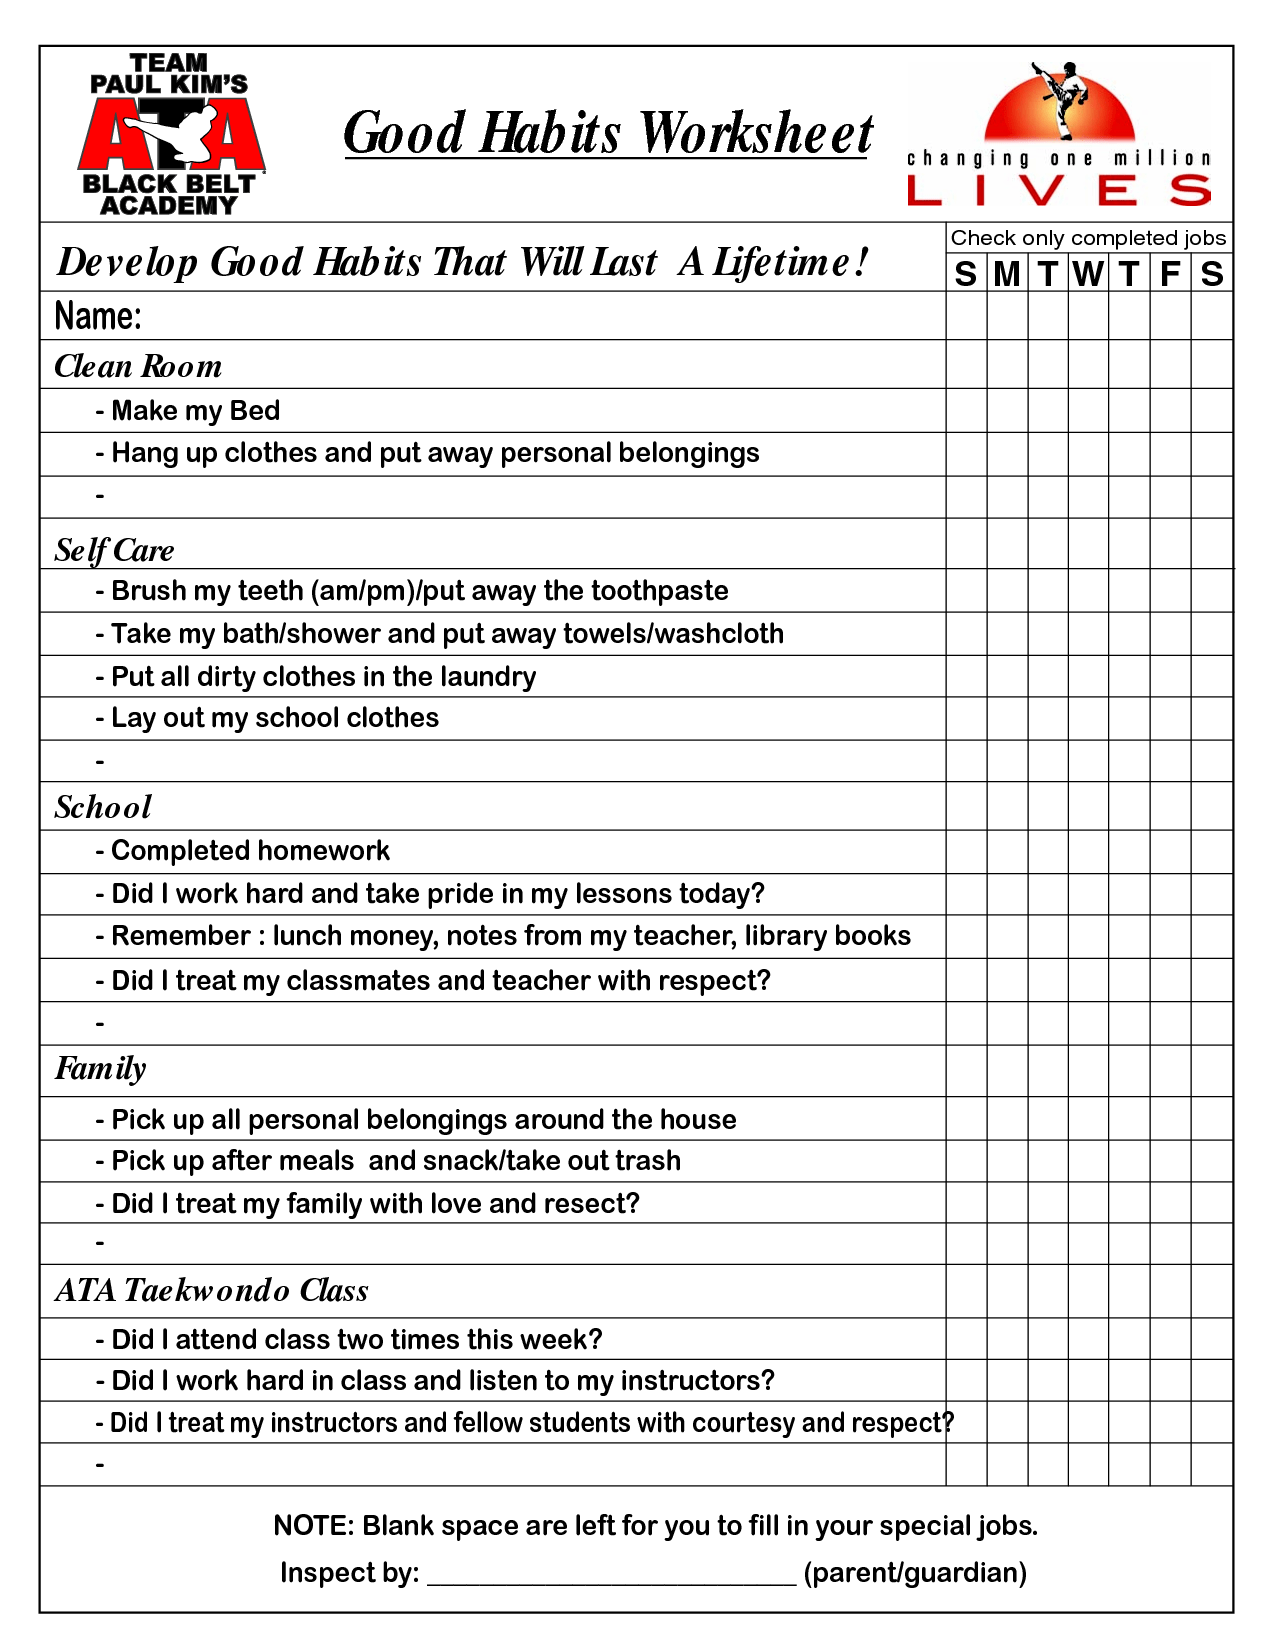 Lesson Healthy Habits Worksheet